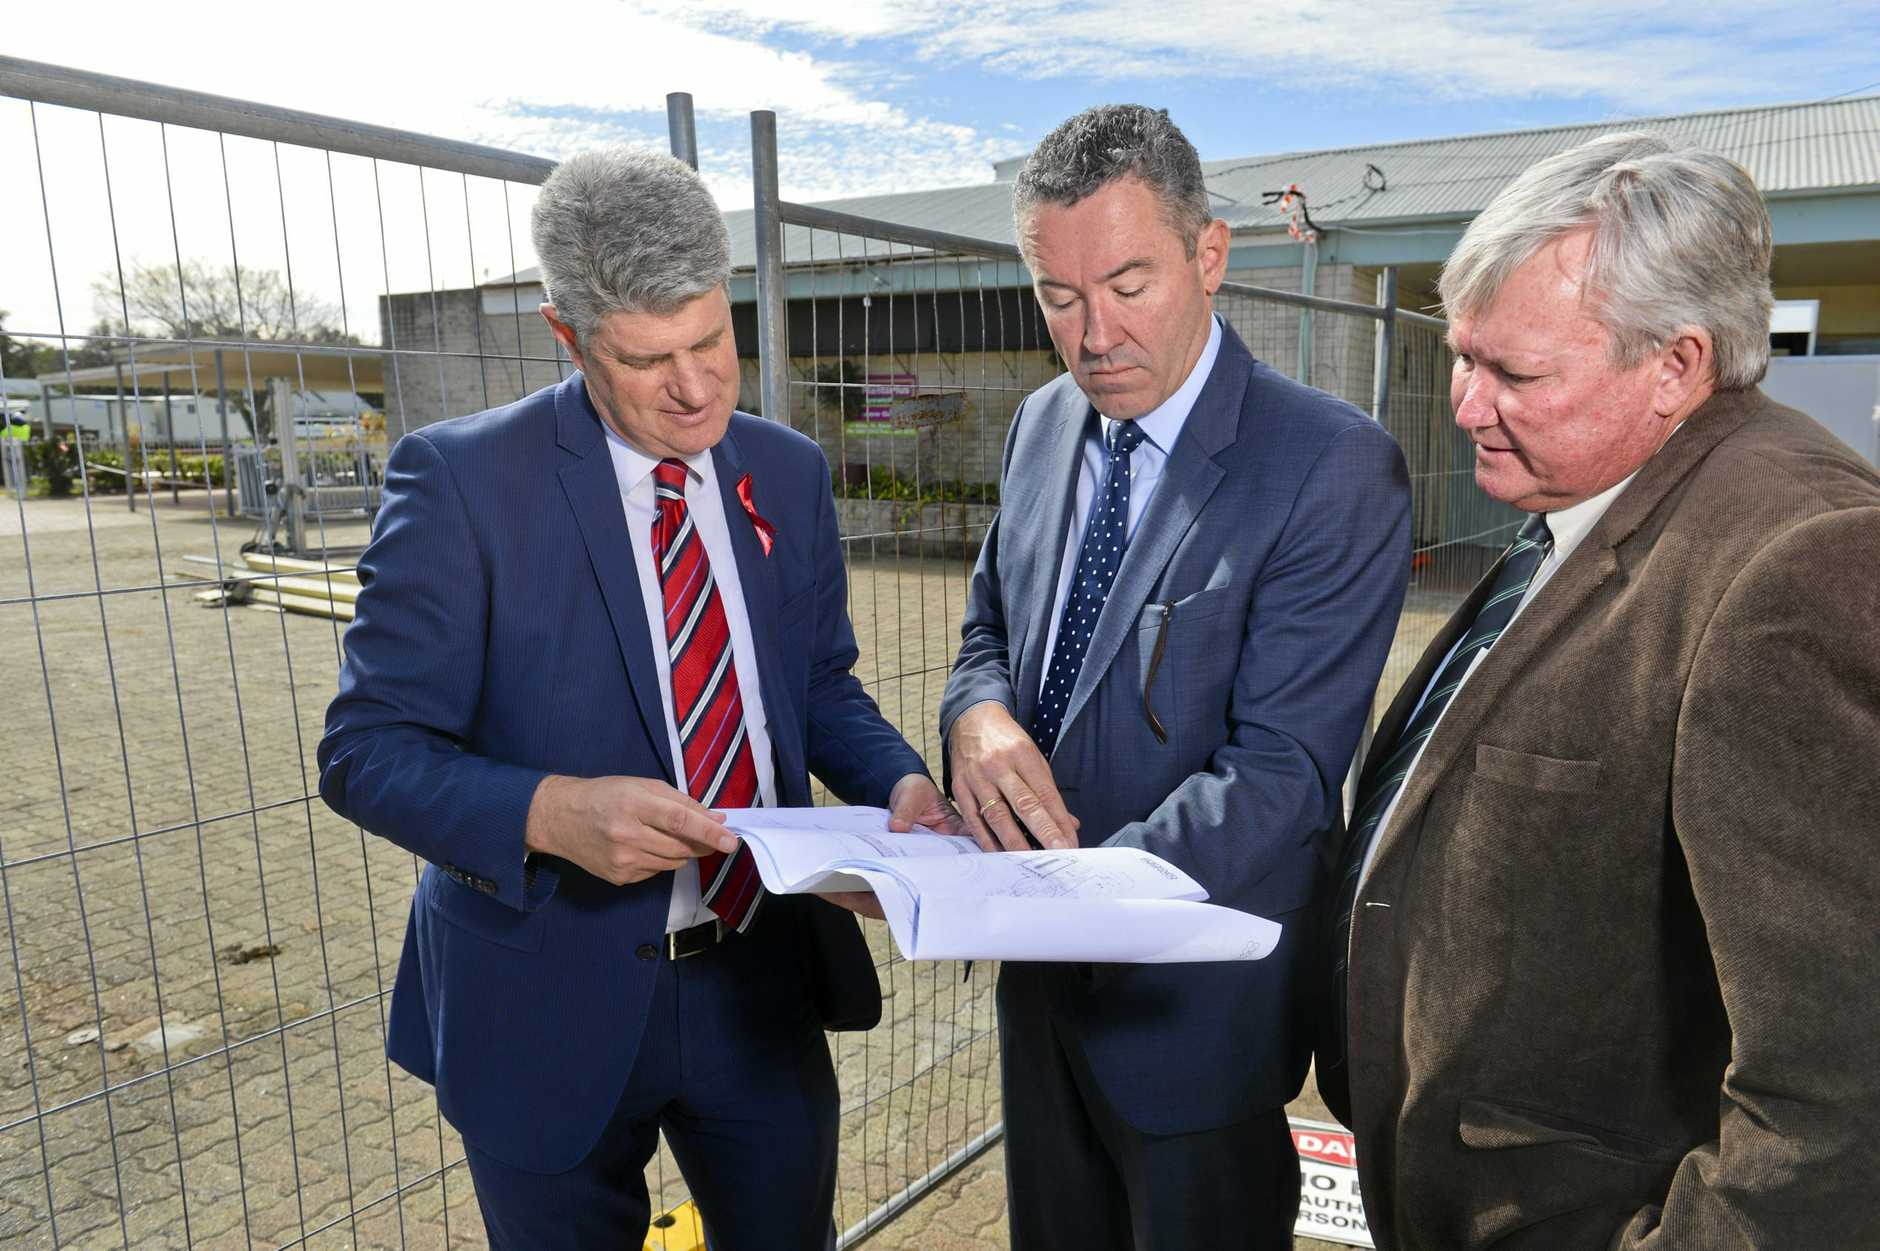 Racing Minister Stirling Hinchliffe, Racing Queensland CEO Brendan Parnell and Ipswich Turf Club chairman Wayne Patch look over major redevelopment plans for the Ipswich Turf Club.